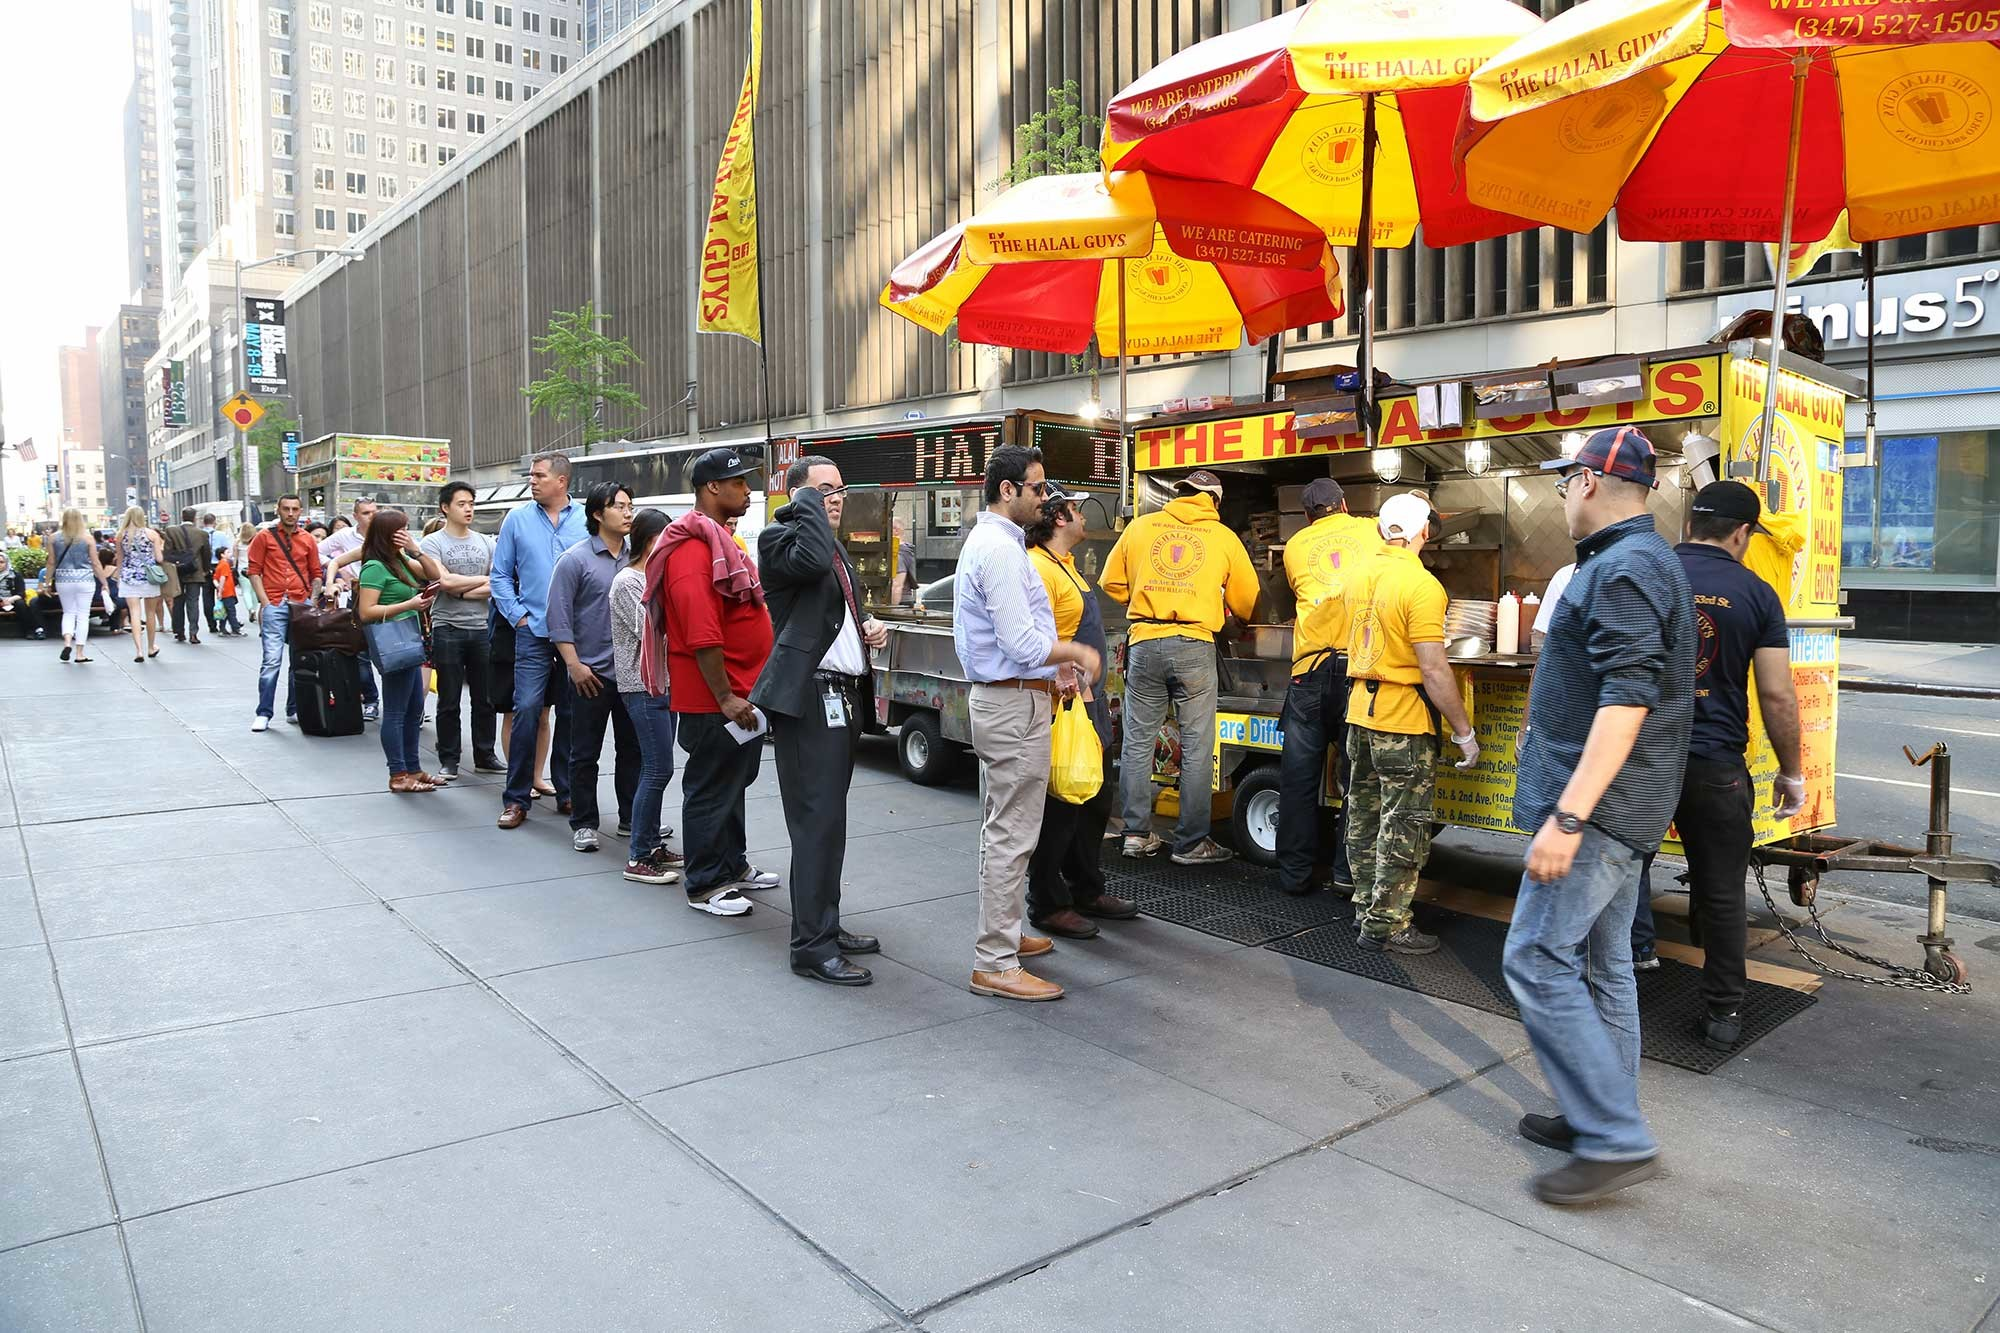 """The Halal Guys"" Sued for Overtime Violations"